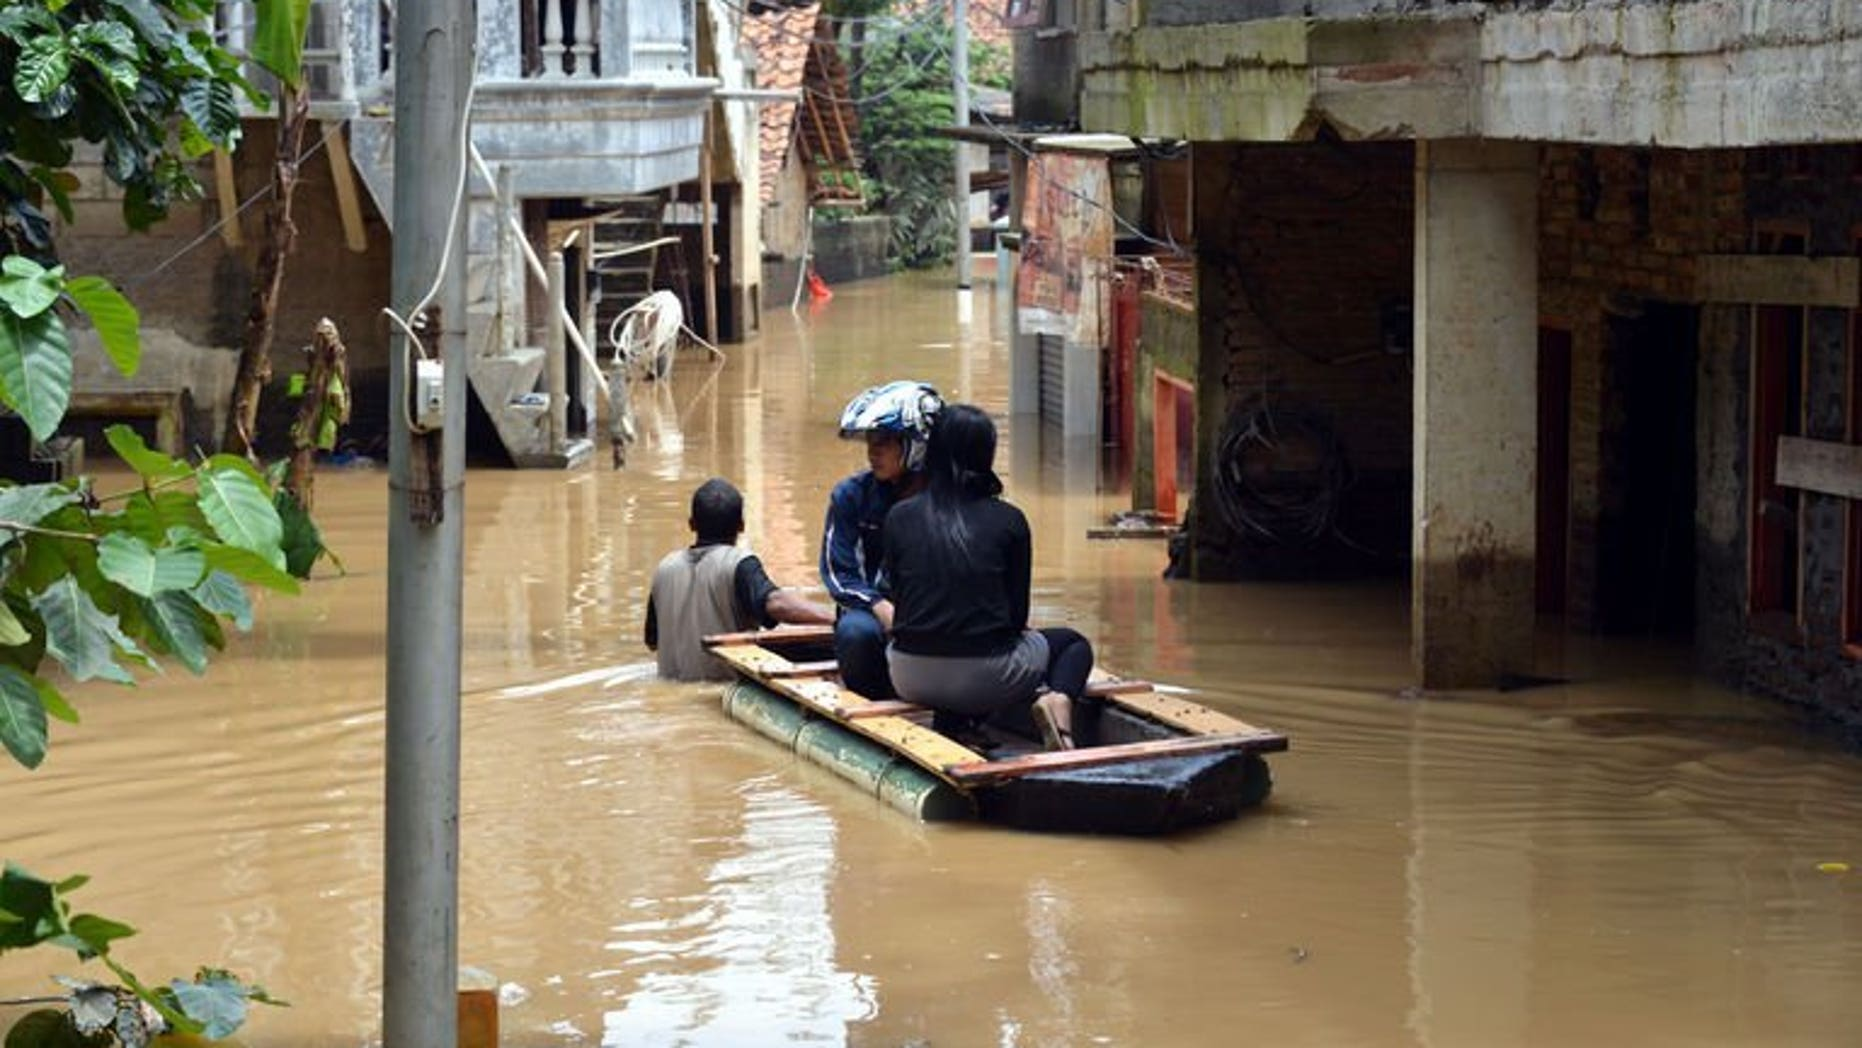 File picture shows residents in an improvised raft travelling down a flooded lane in south Jakarta on March 5, 2013 following heavy rains in nearby mountain areas. At least eight people are dead and five are missing after flooding and landslides hit eastern Indonesia, an official said on Tuesday.